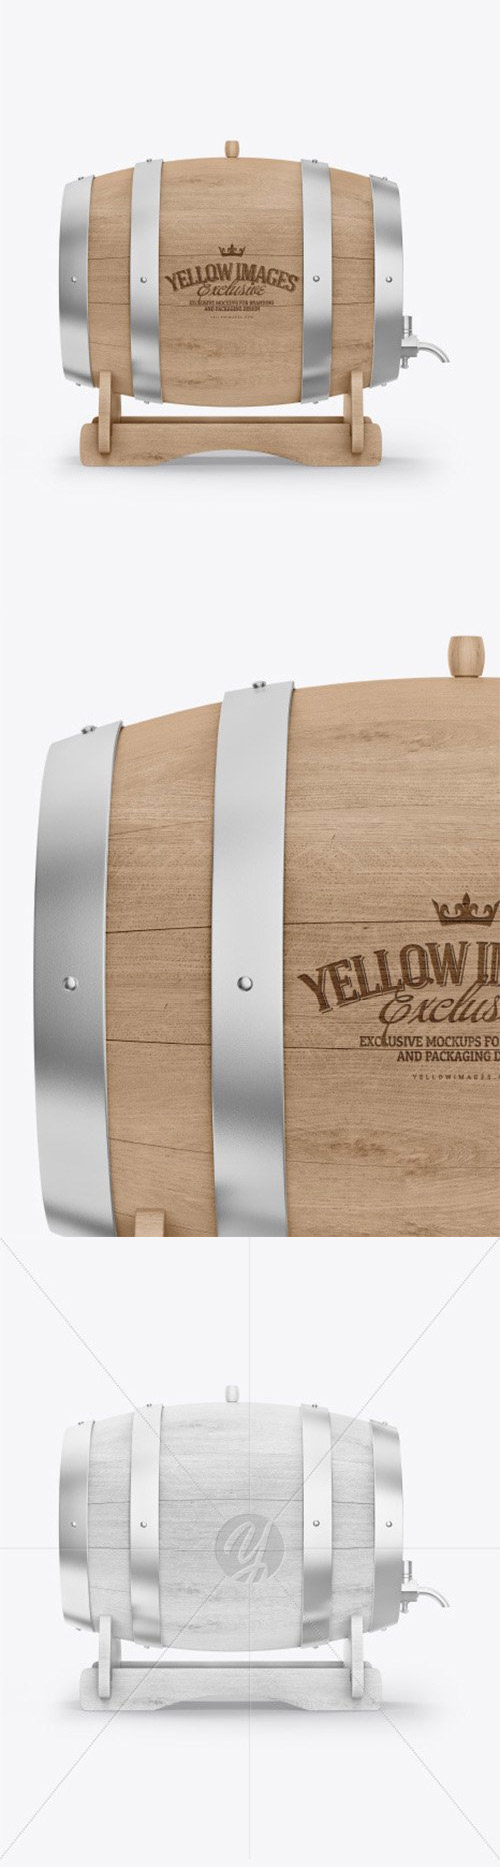 Wooden Barrel on Stand Mockup 64239